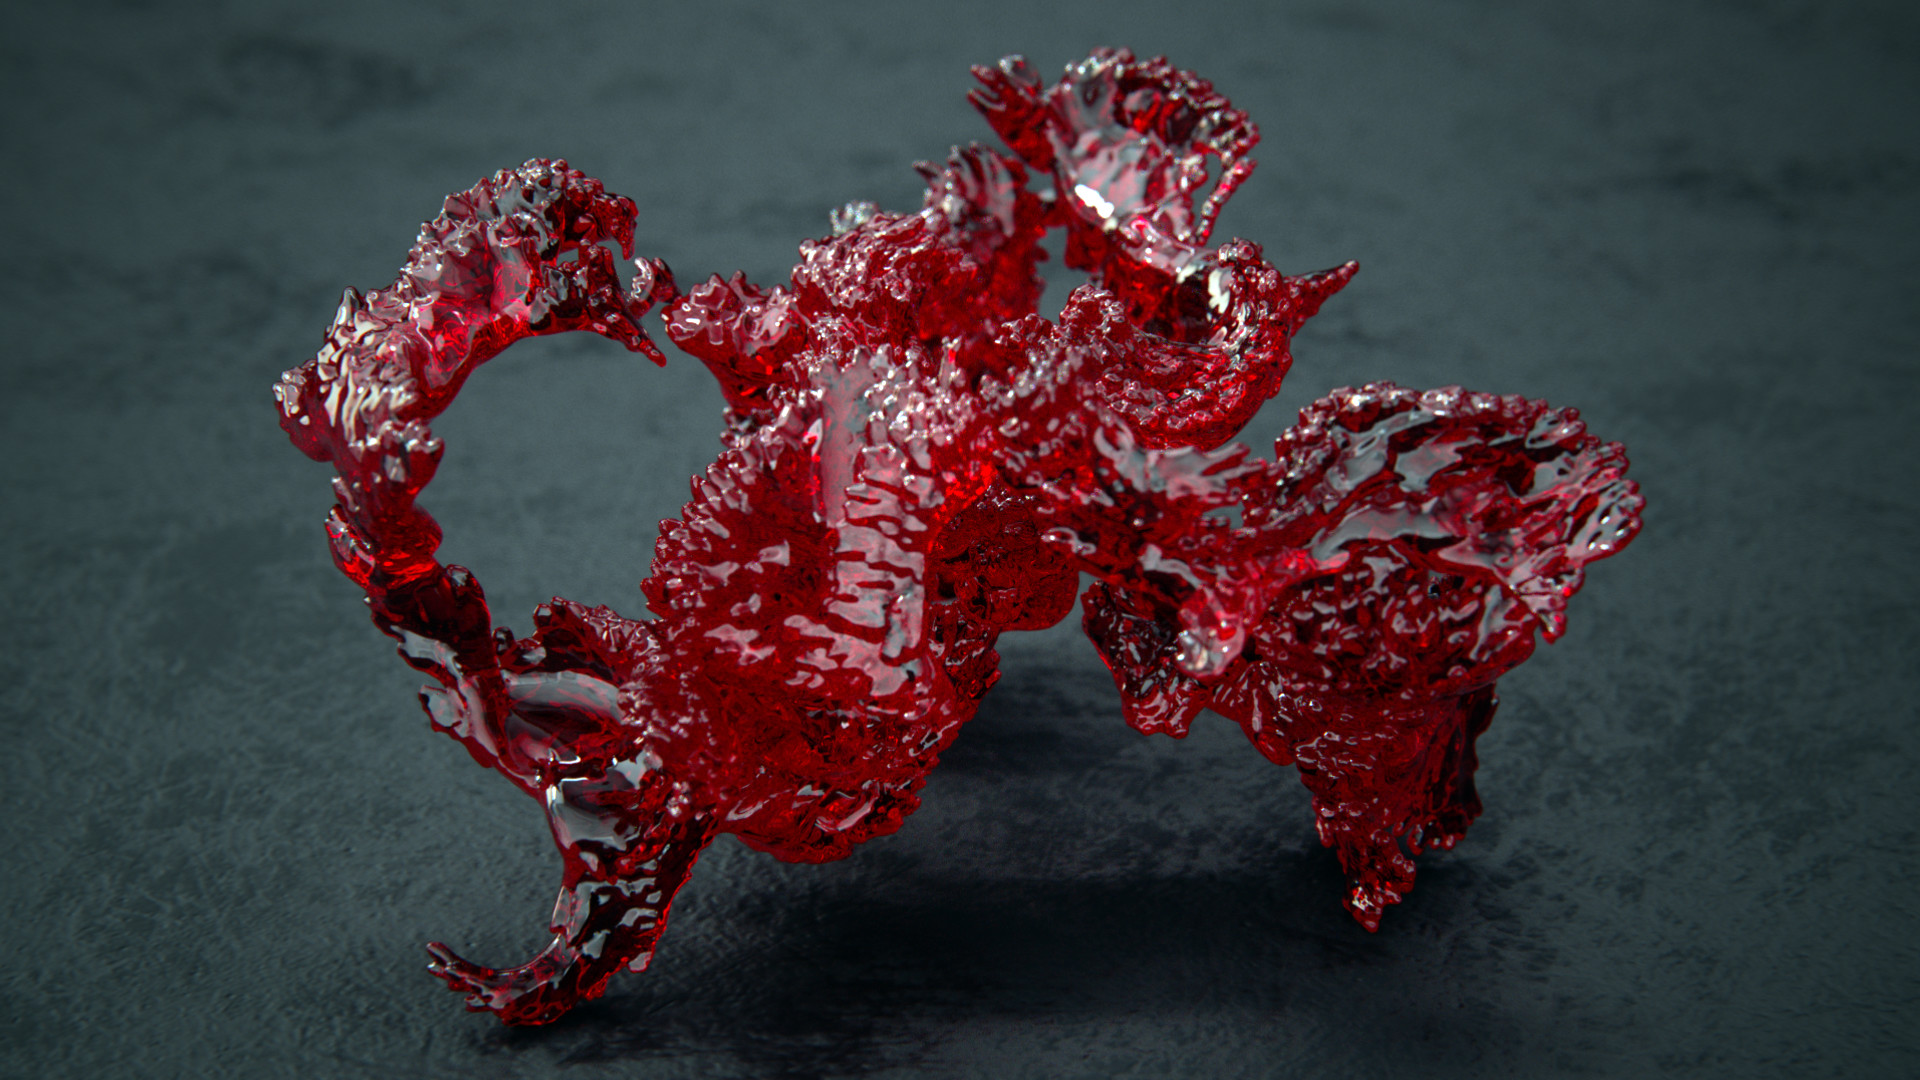 Reinhard kepplinger mm turbosmoothed collapsed recursive growth v2 frame66 ruby red iso500 can2